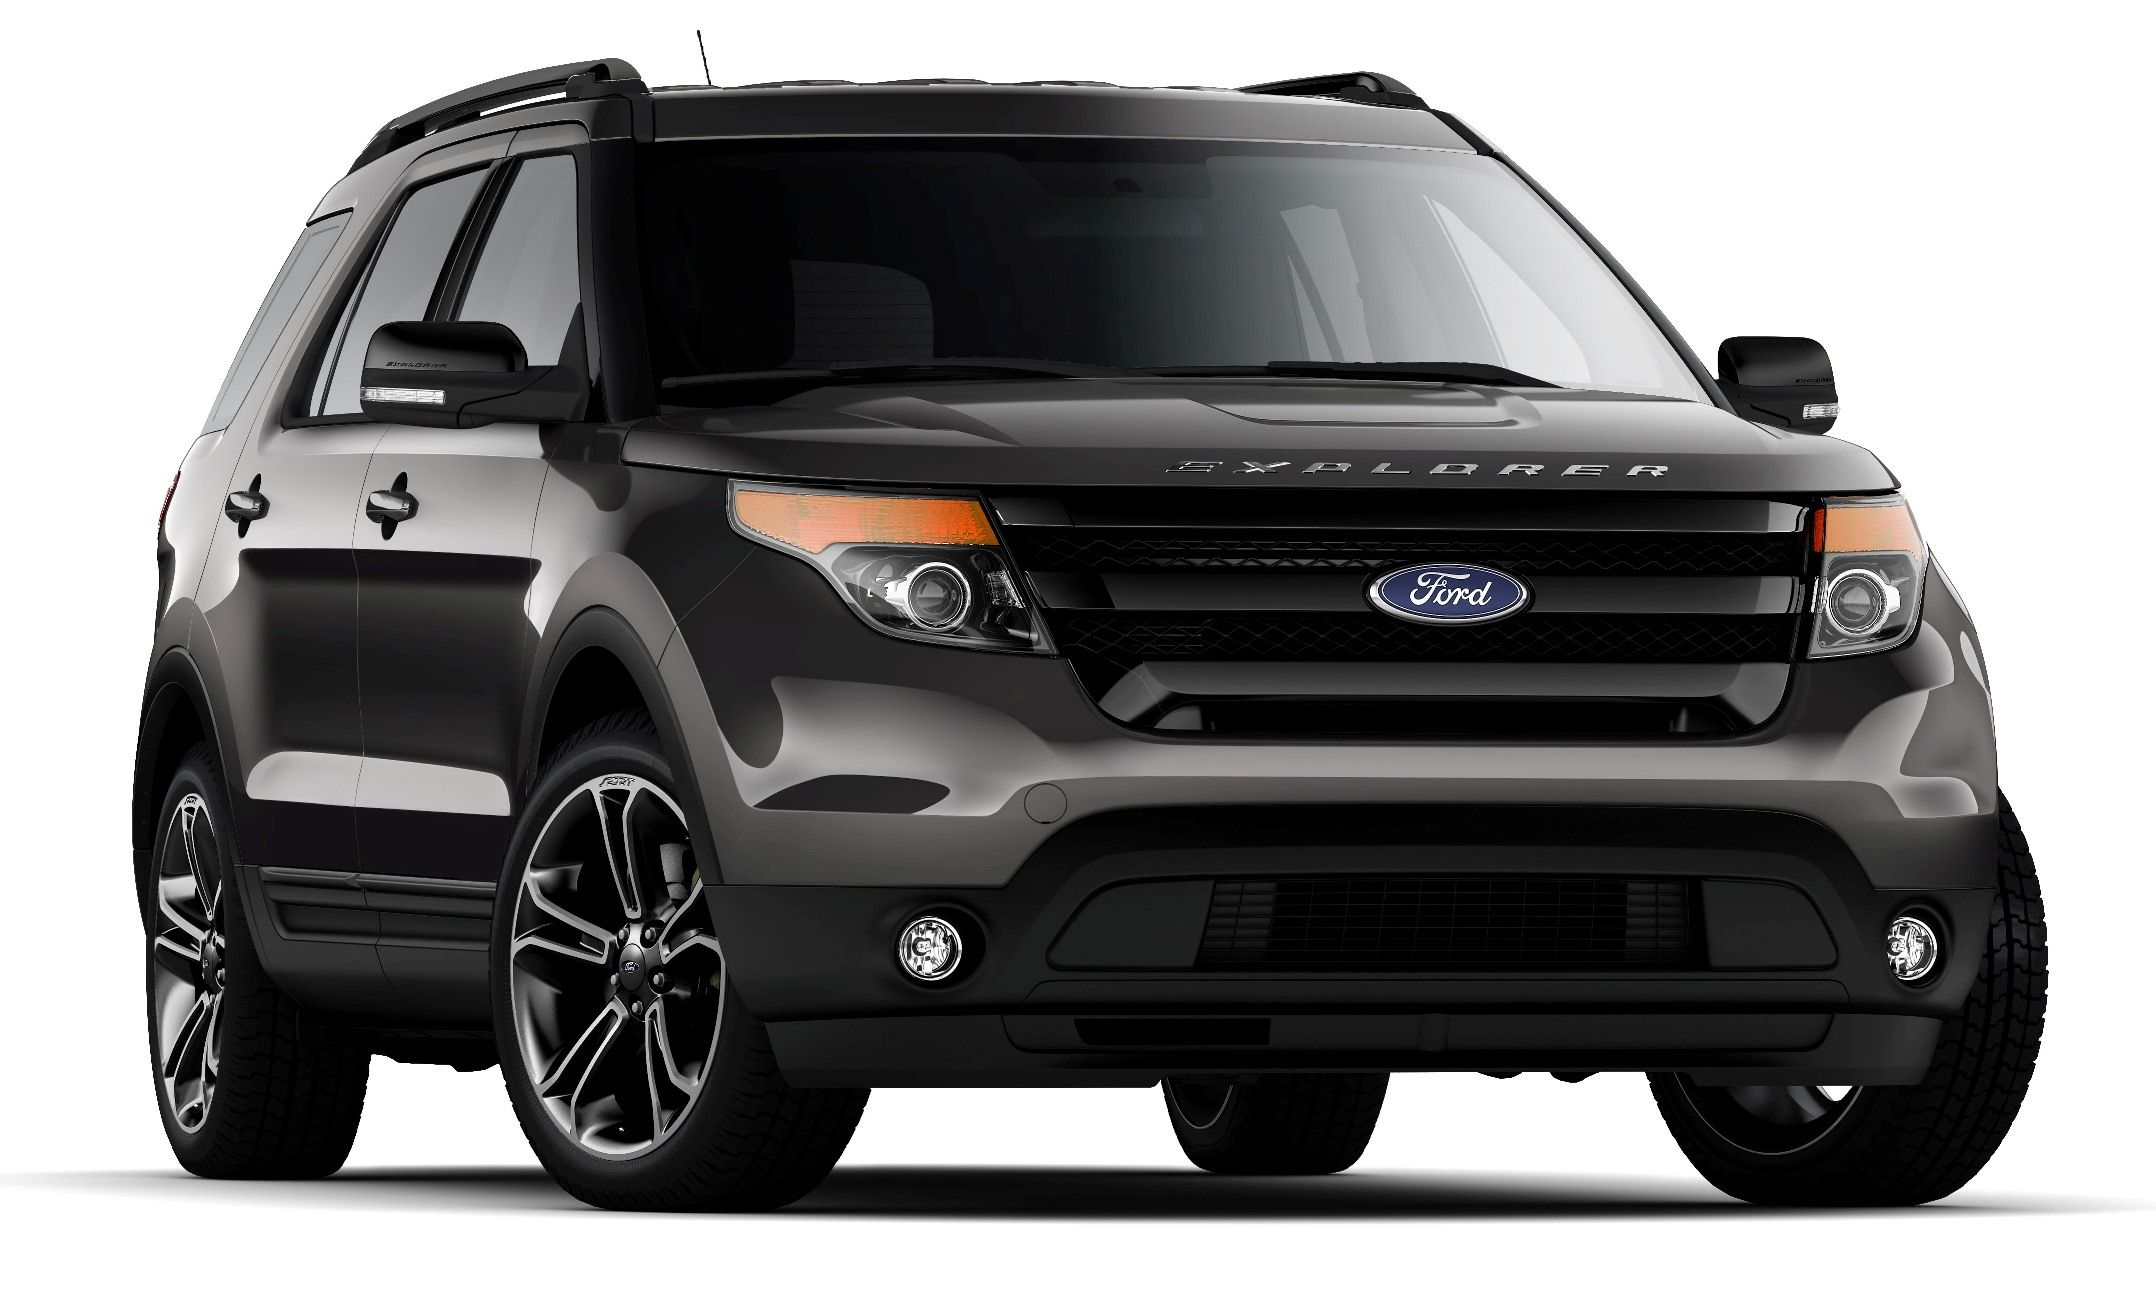 ford 2015 ford explorer black - New 2015 Ford Explorer Black Color